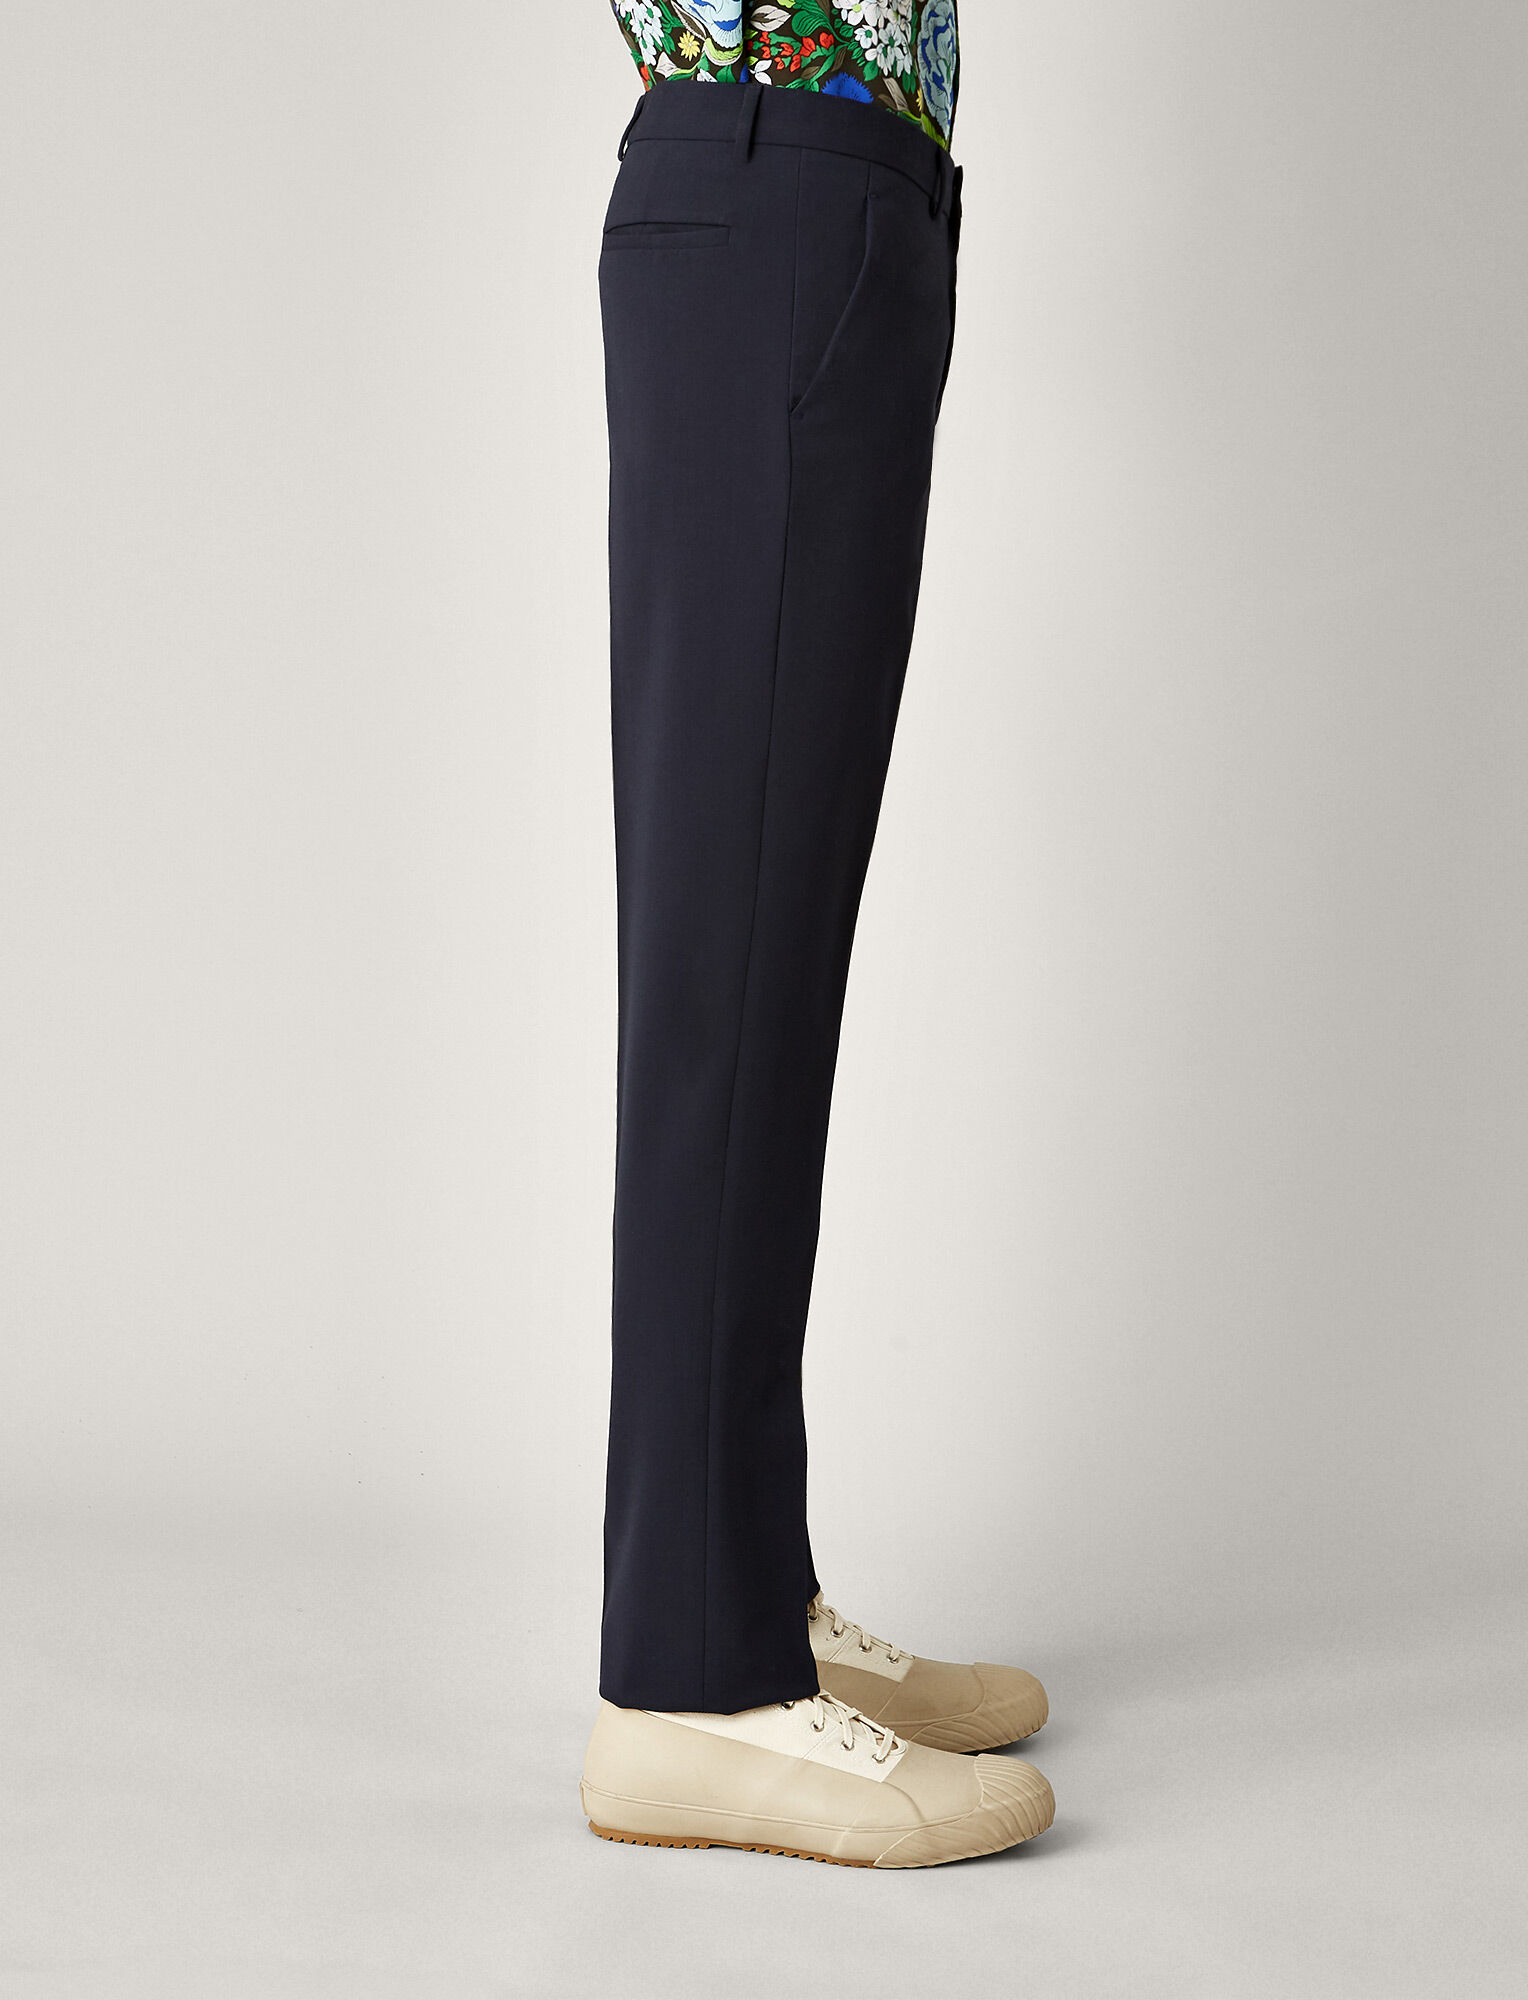 Joseph, Jack Techno Wool Stretch Trousers, in NAVY